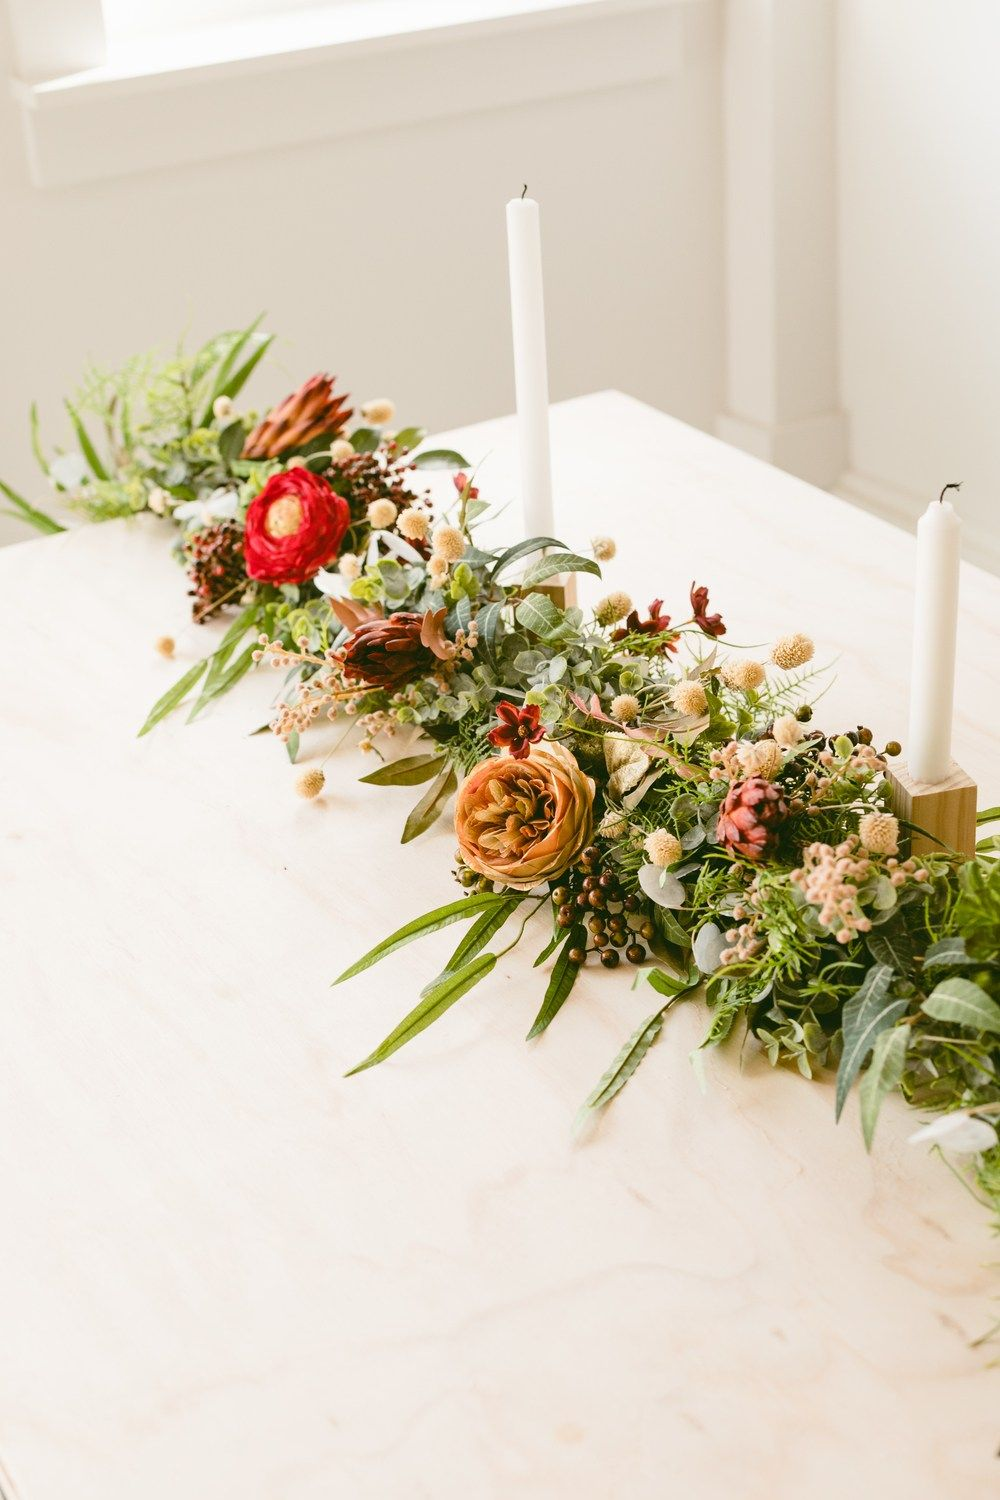 Get In The Holidiy Spirit With This Floral Christmas Garland Diy